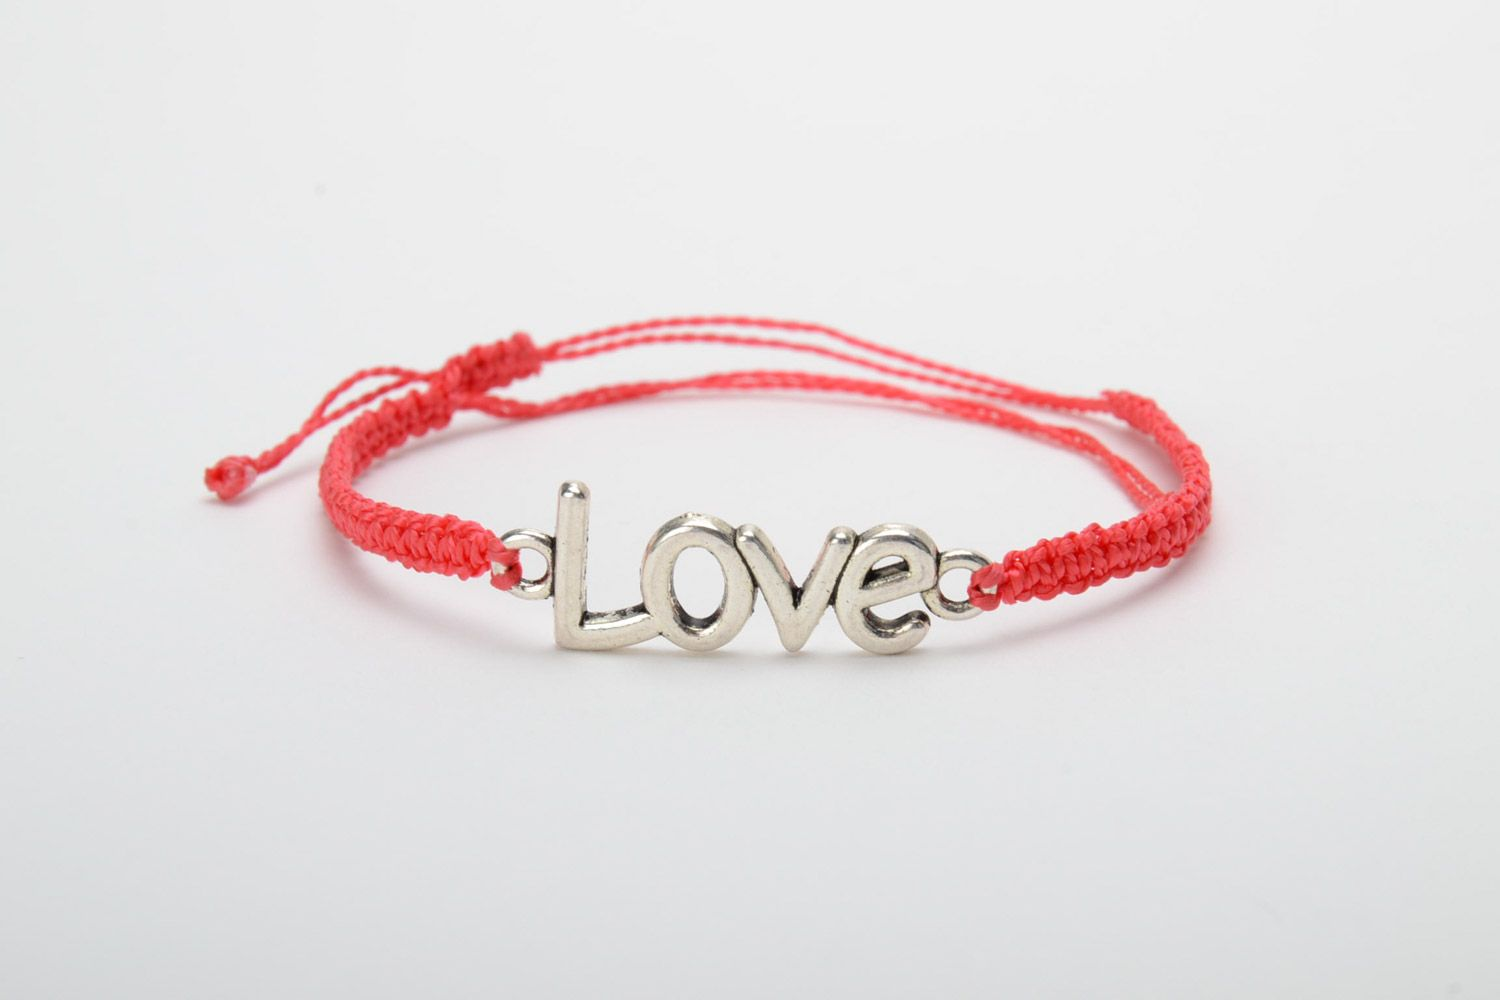 Handmade women's woven cord bracelet of red color with metal charm lettering photo 5